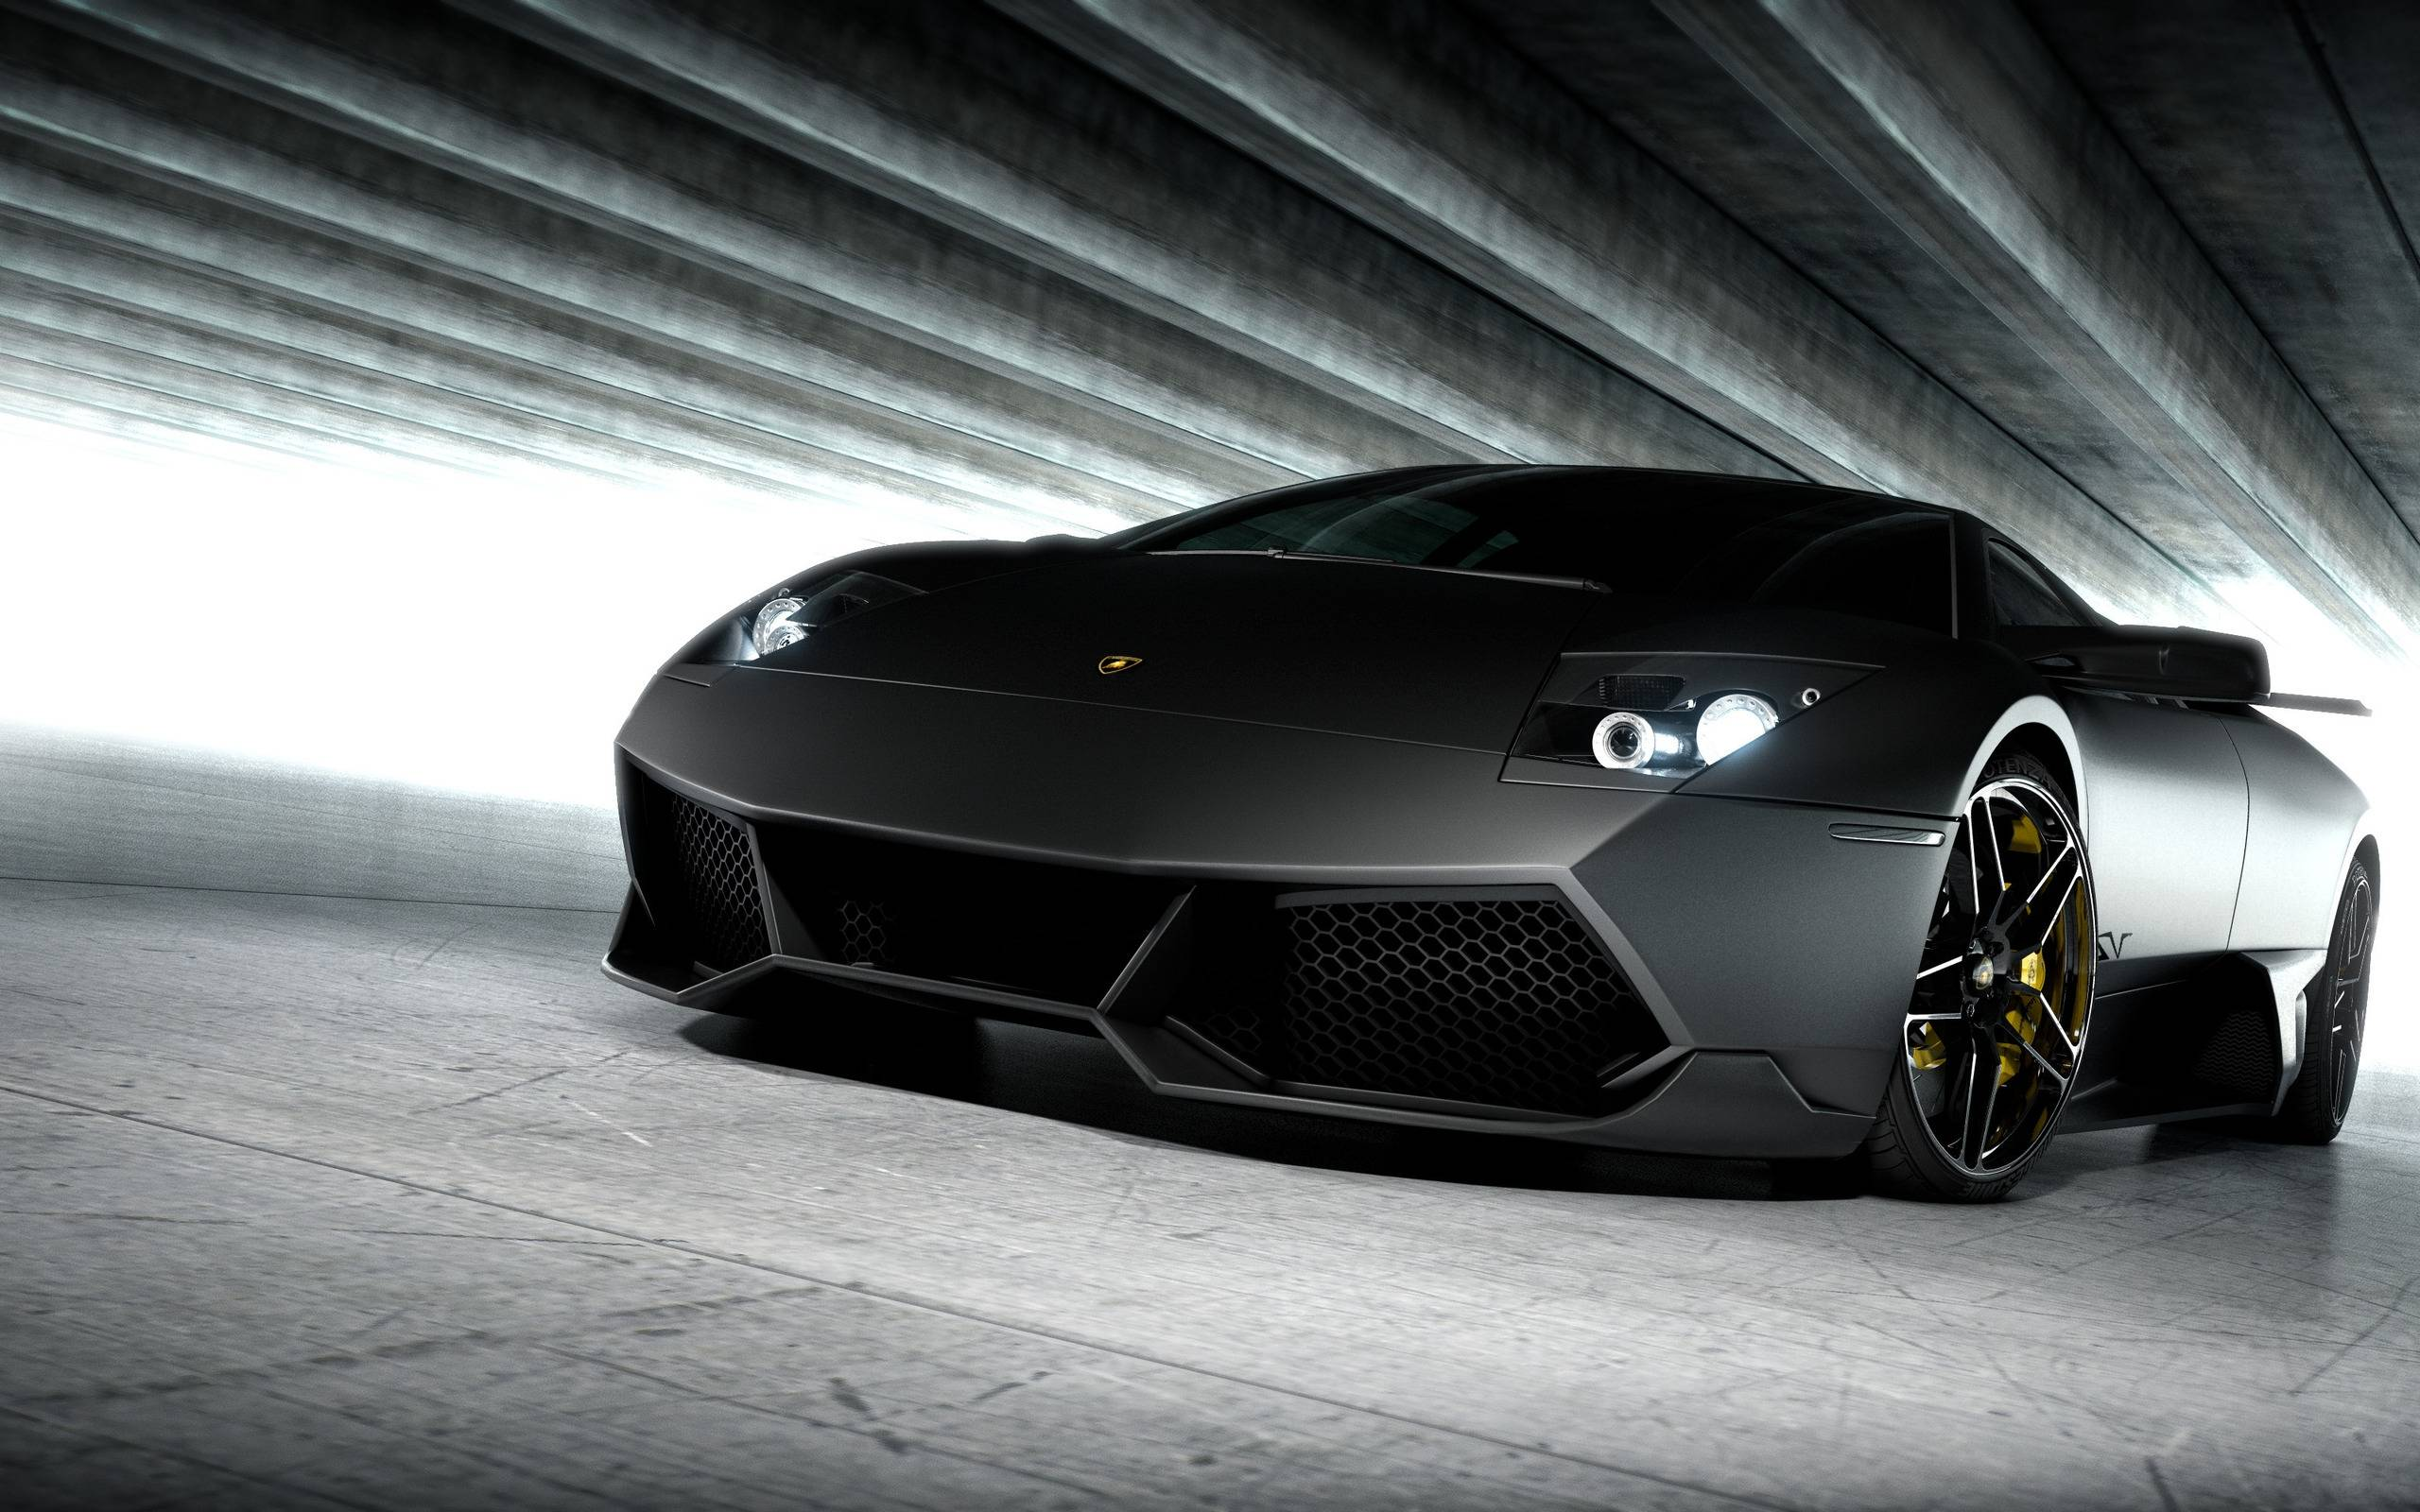 Lamborghini Fast Car Wallpaper